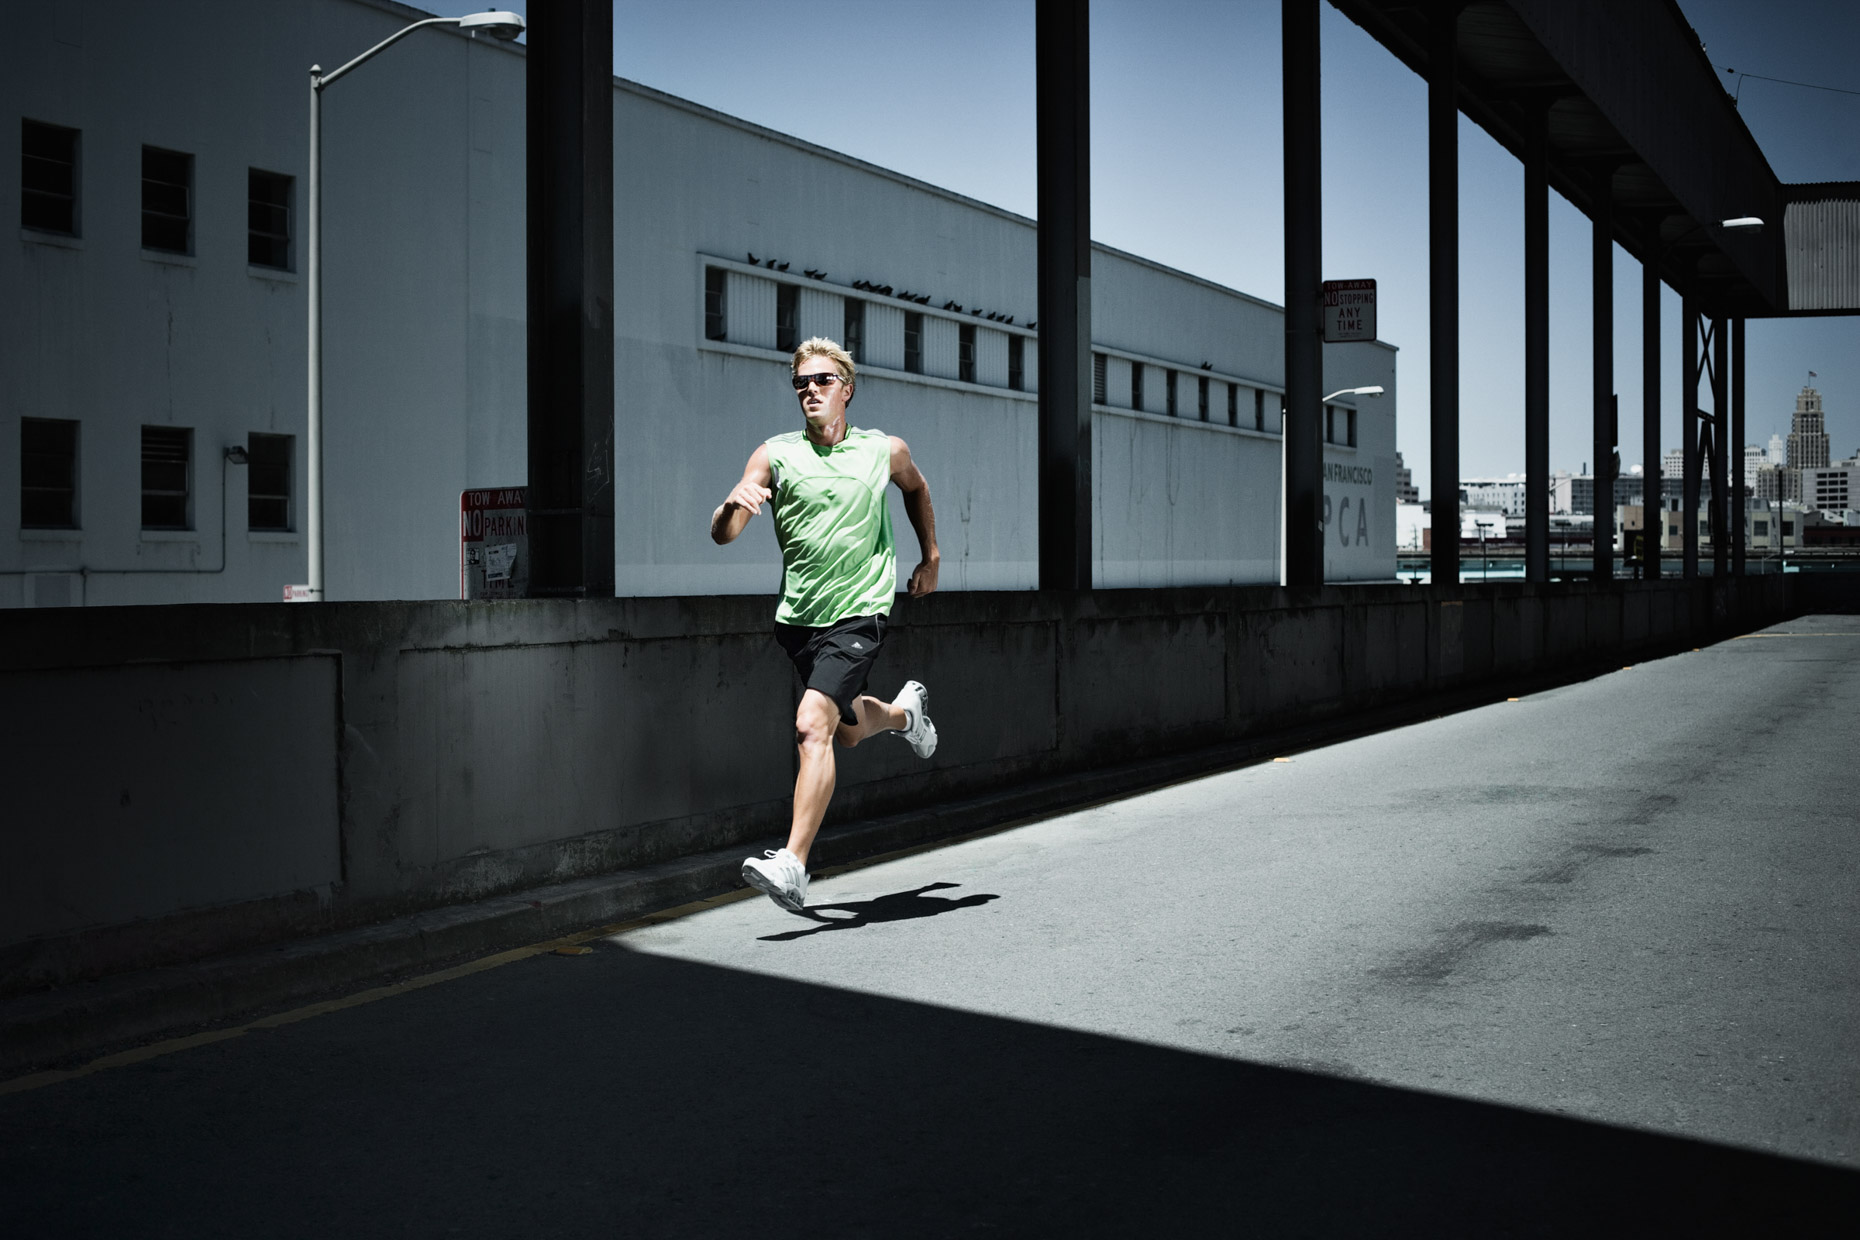 Urban running in San Francisco by dramatic sport photographer Andy Batt